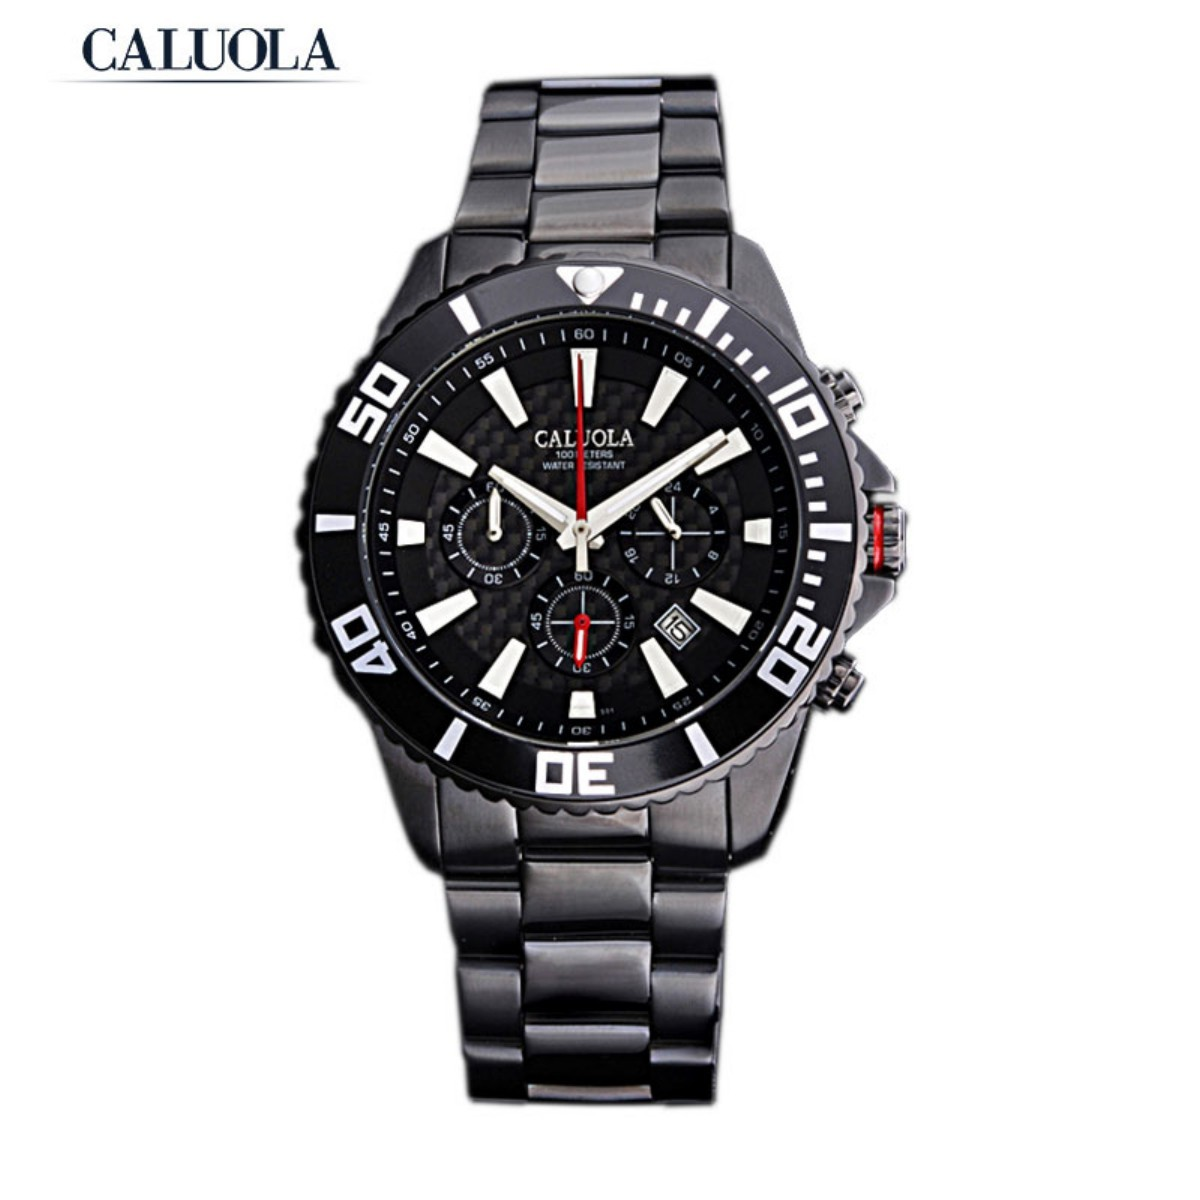 Caluola Men Watch 43mm PVD CA1040